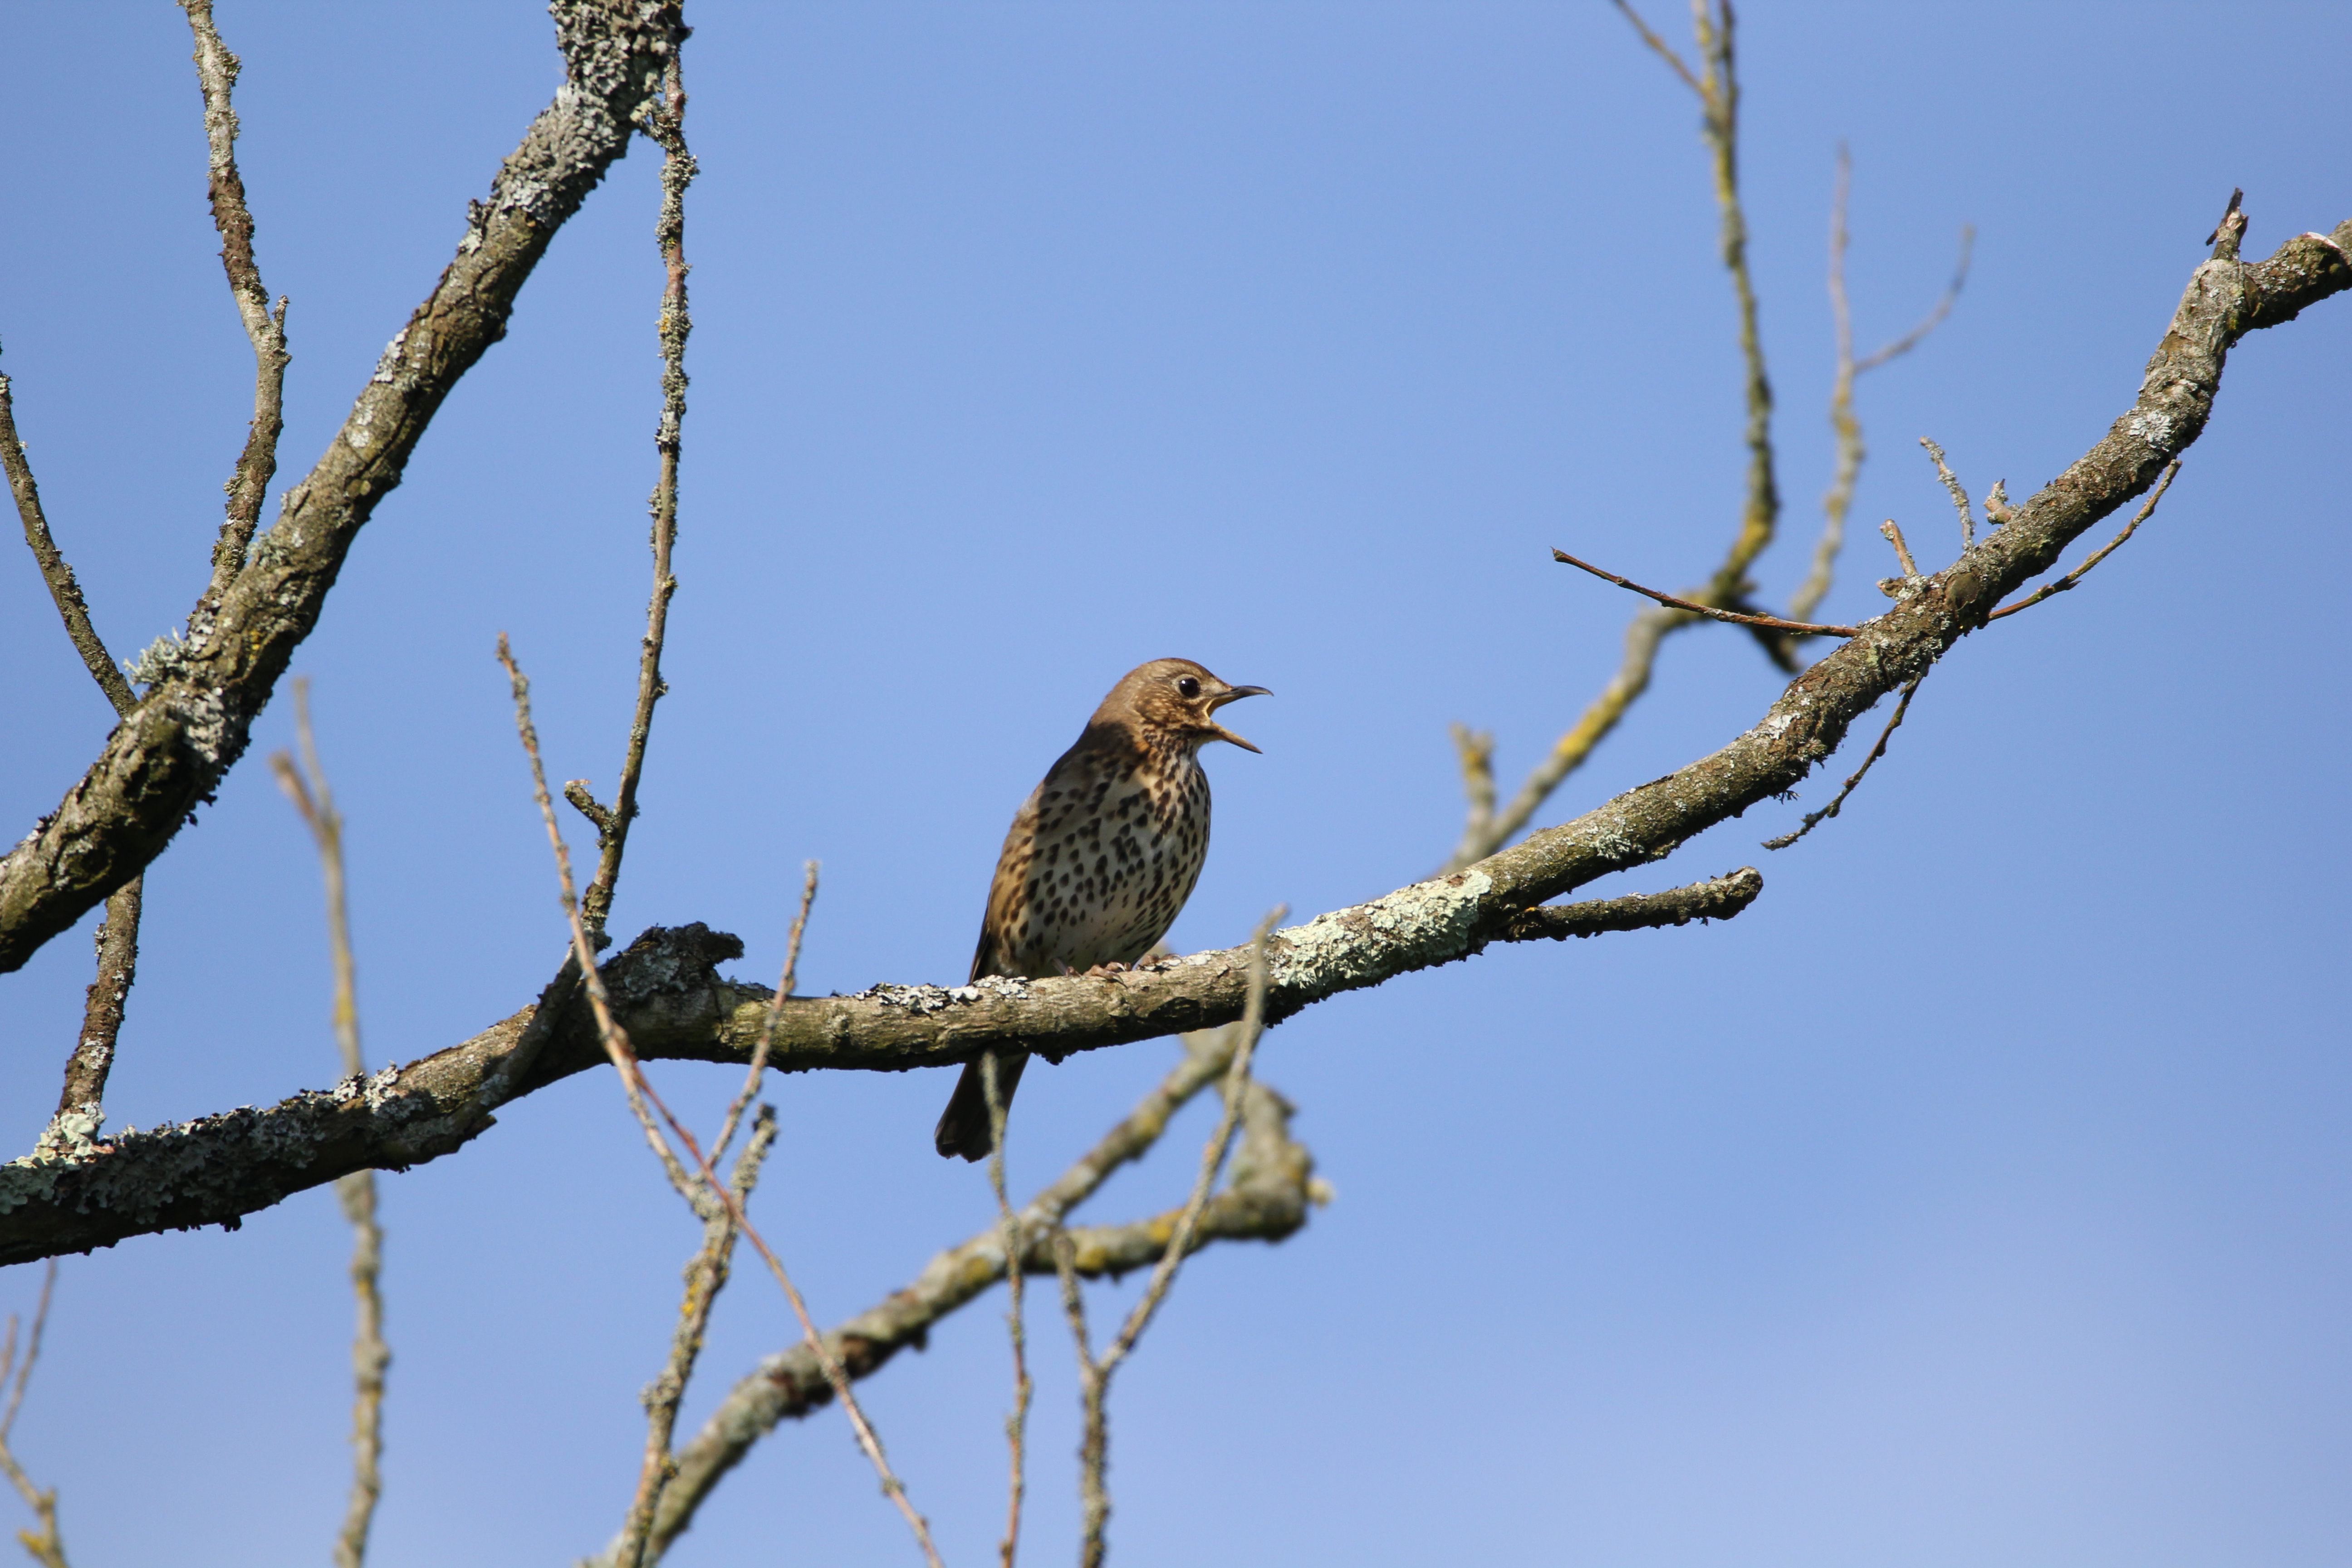 Song Thrush (Turdus philomelos) at Woods Mill